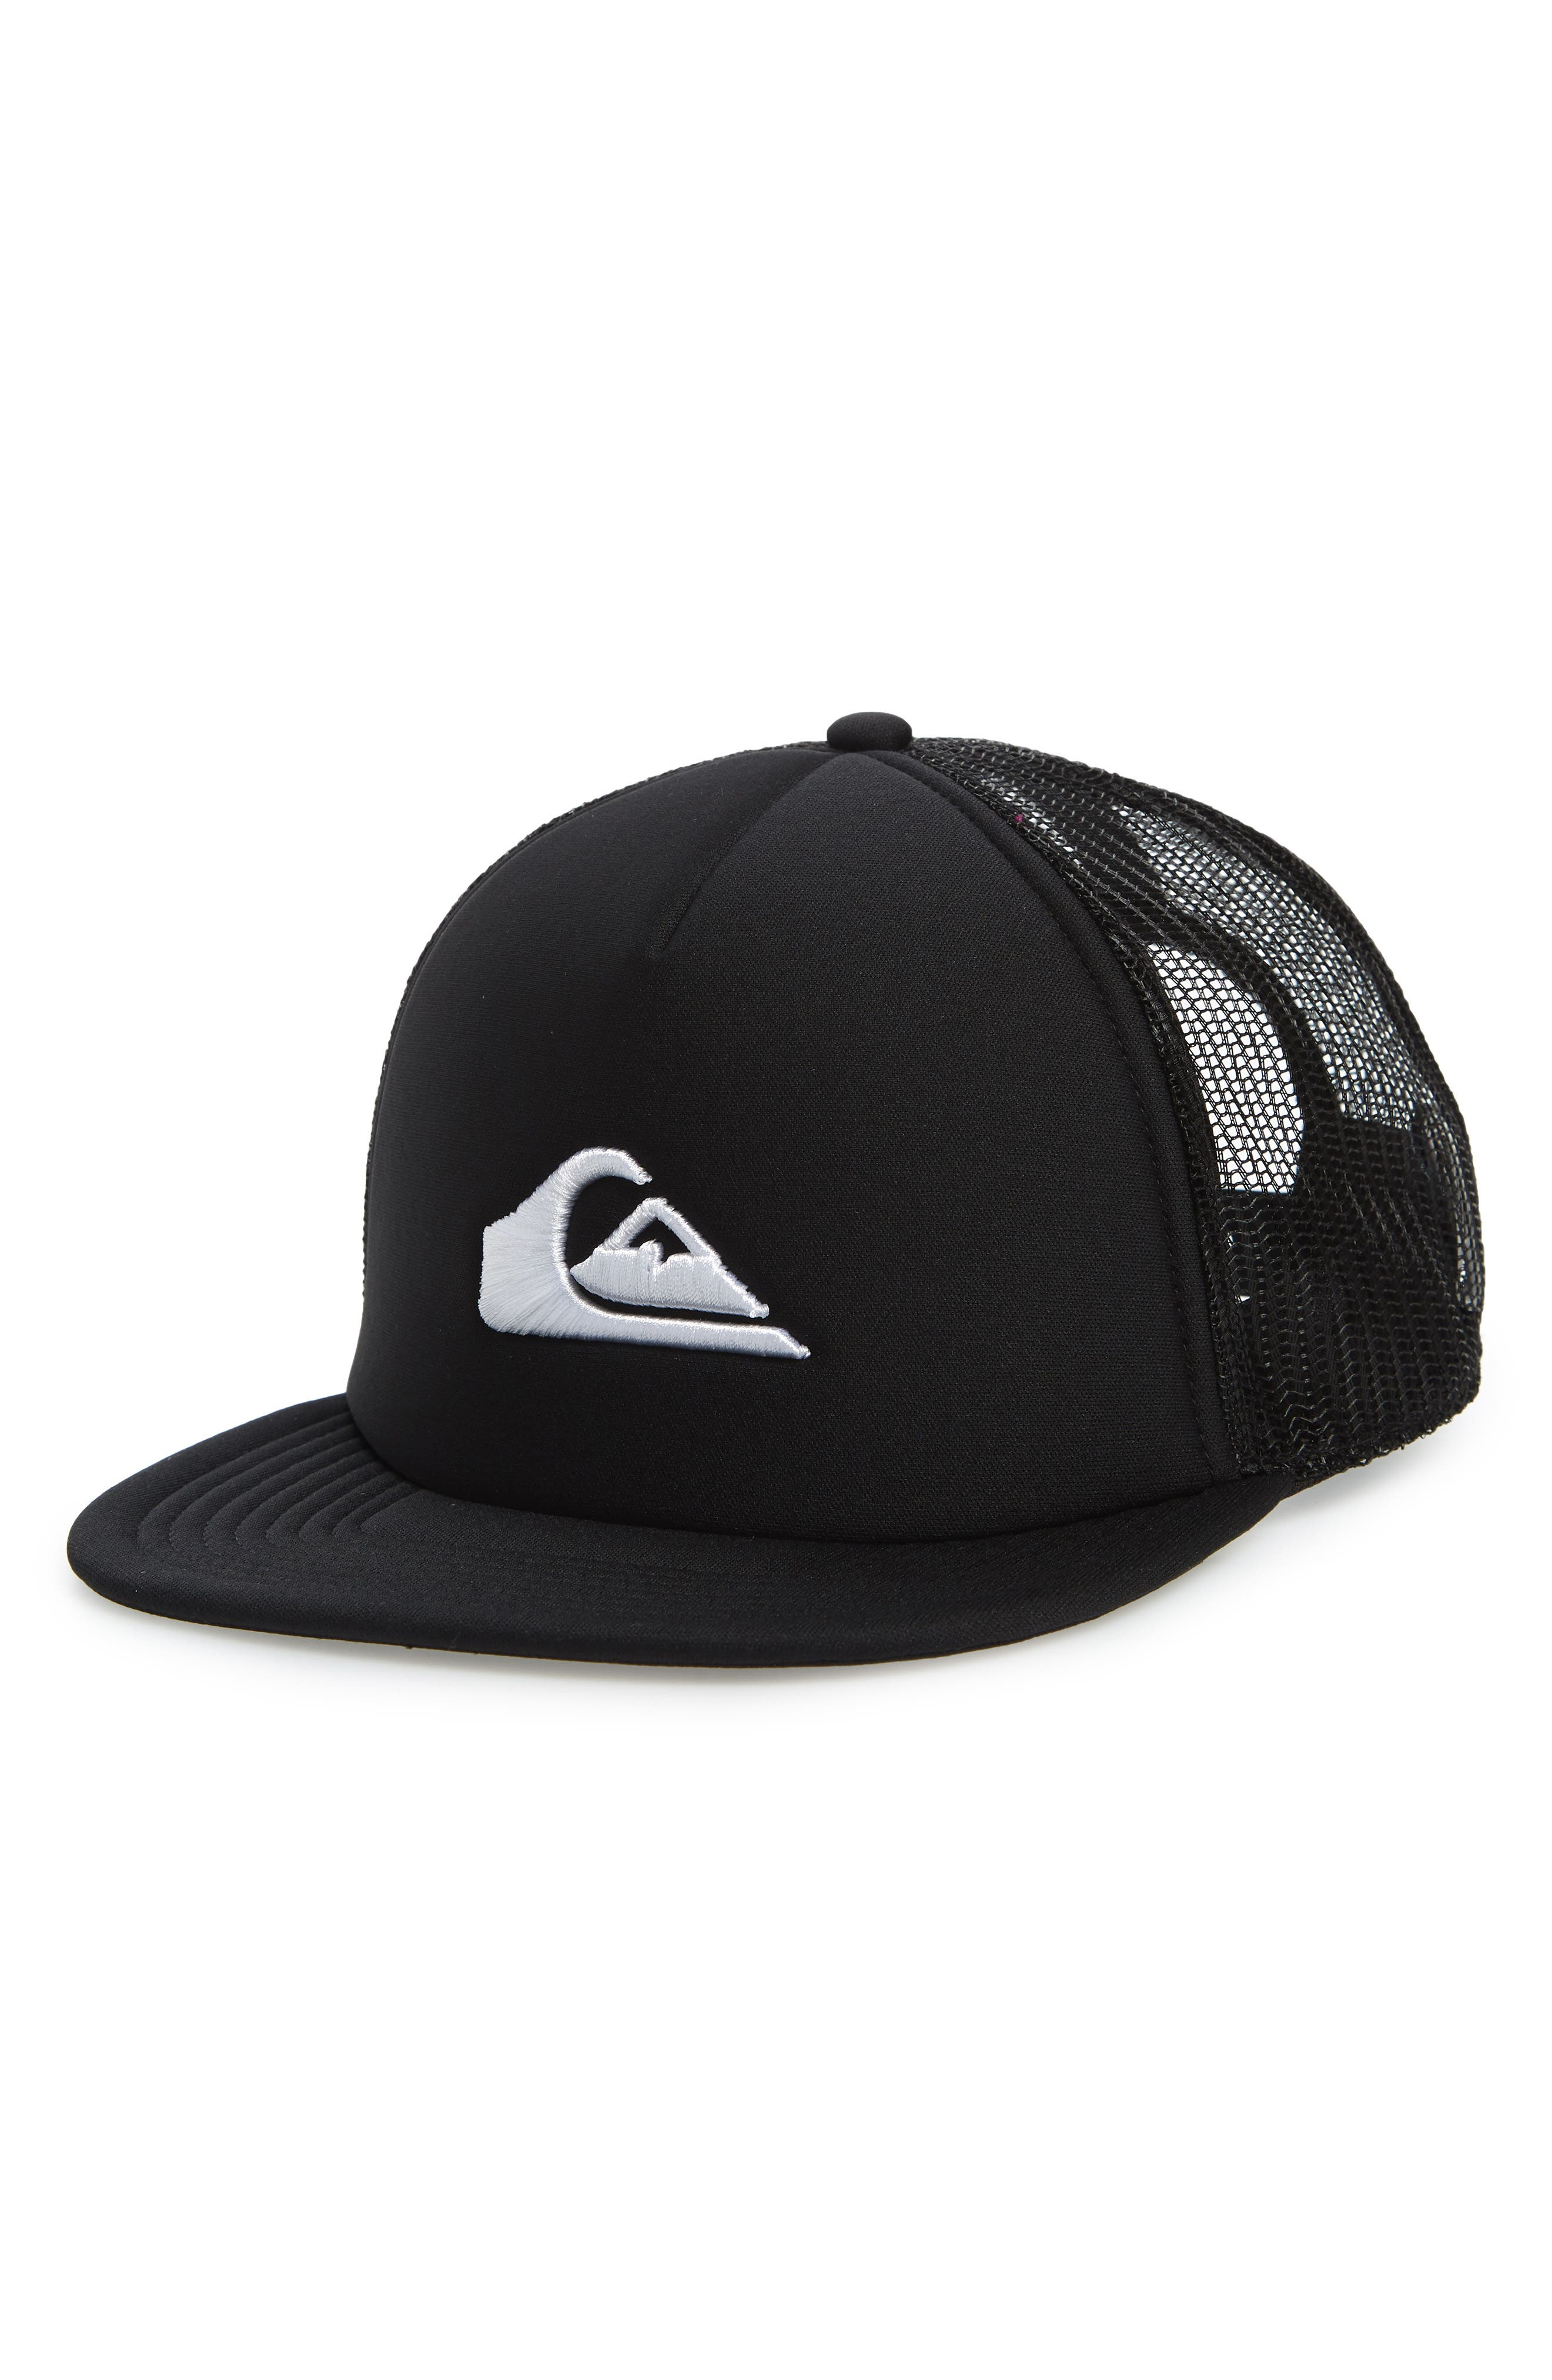 All In Trucker Hat,                             Main thumbnail 1, color,                             BLACK